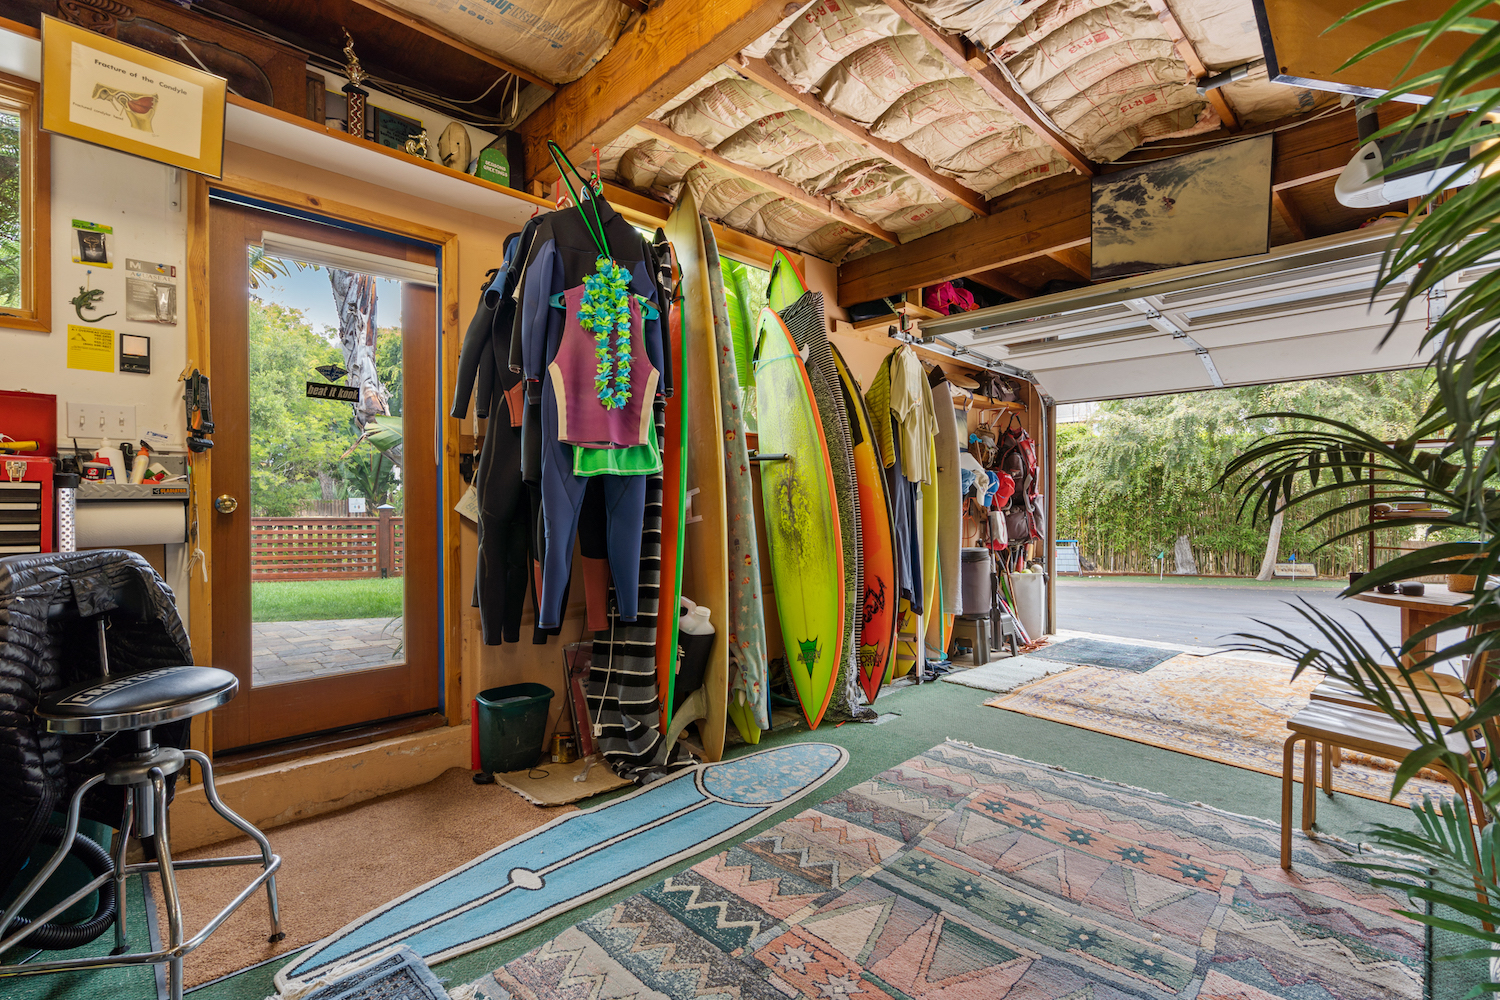 127 bethany curve - storage space for surf gear